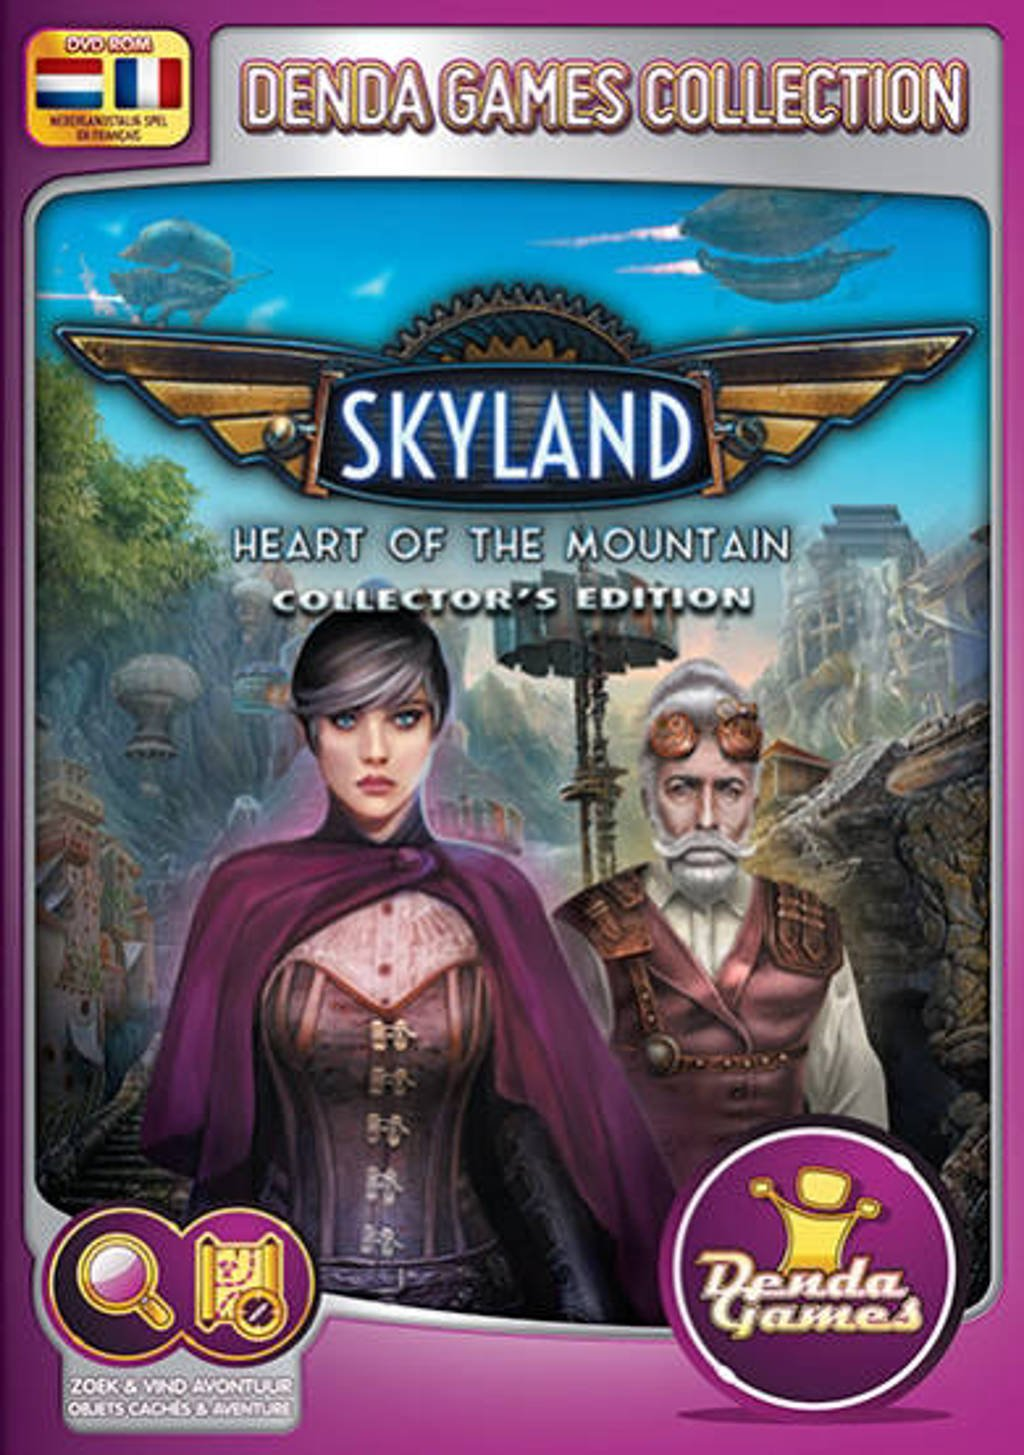 Skyland - Heart of the mountain (Collectors edition) (PC)